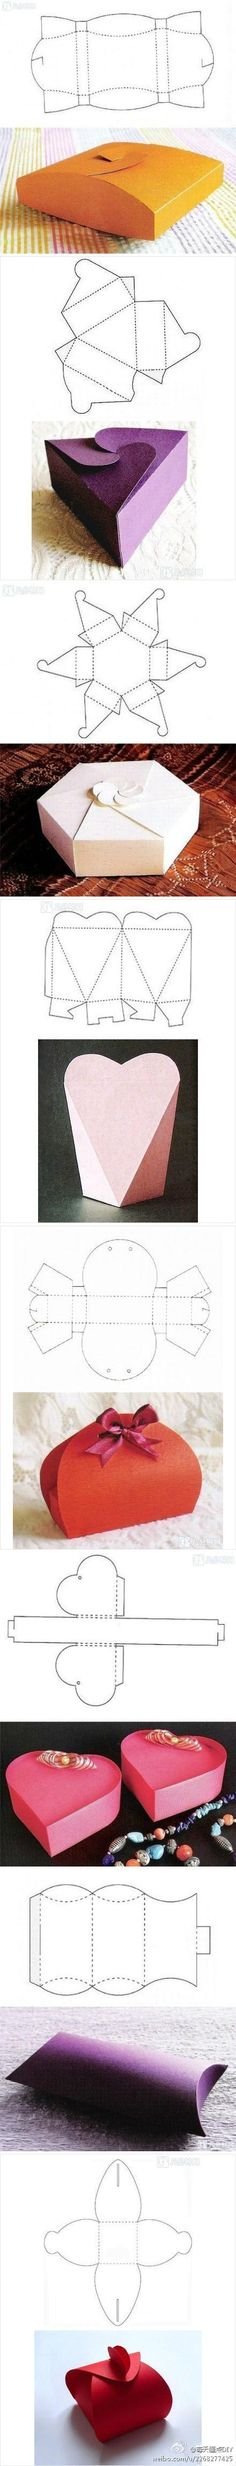 In my 3D Design class in college, we used patterns like this to make 3d shapes out of copious quantities of cardstock, then put the shapes together to make sculptures.  We used a copier to make the patterns bigger/smaller.